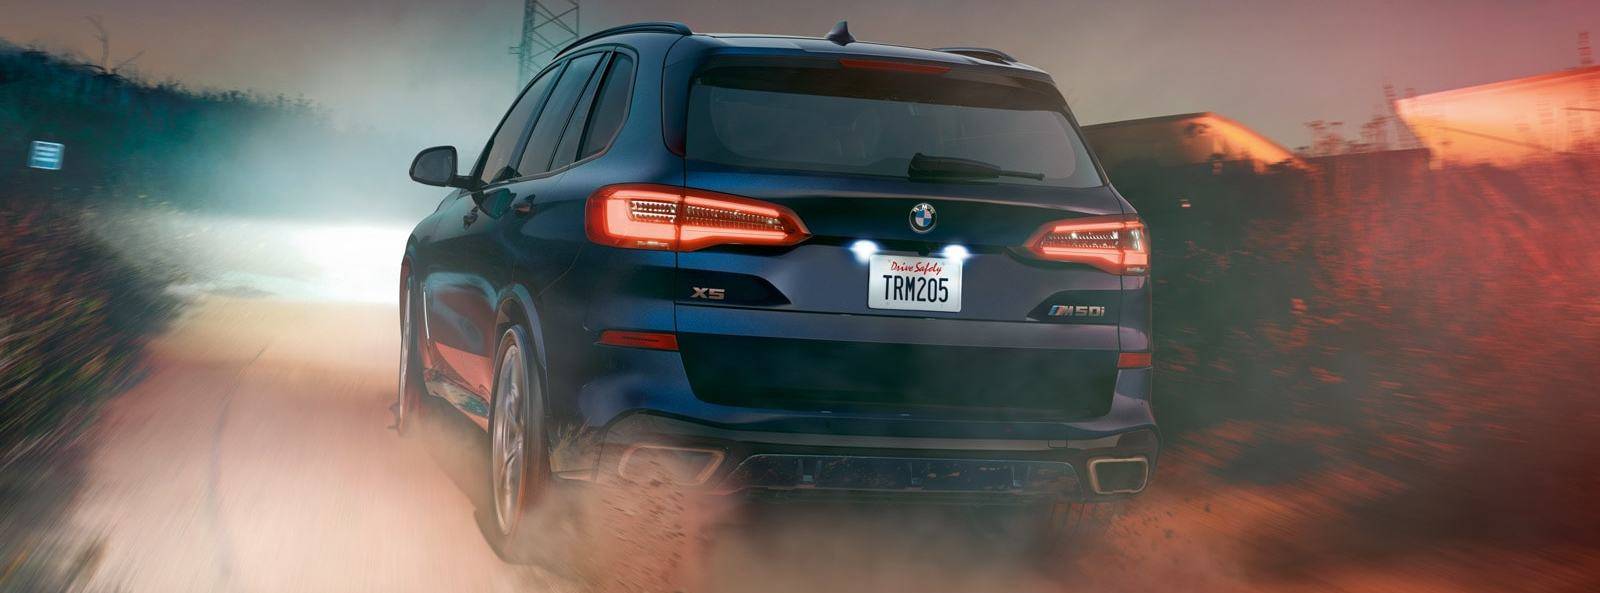 2020 BMW X5 Lease in Plano, TX